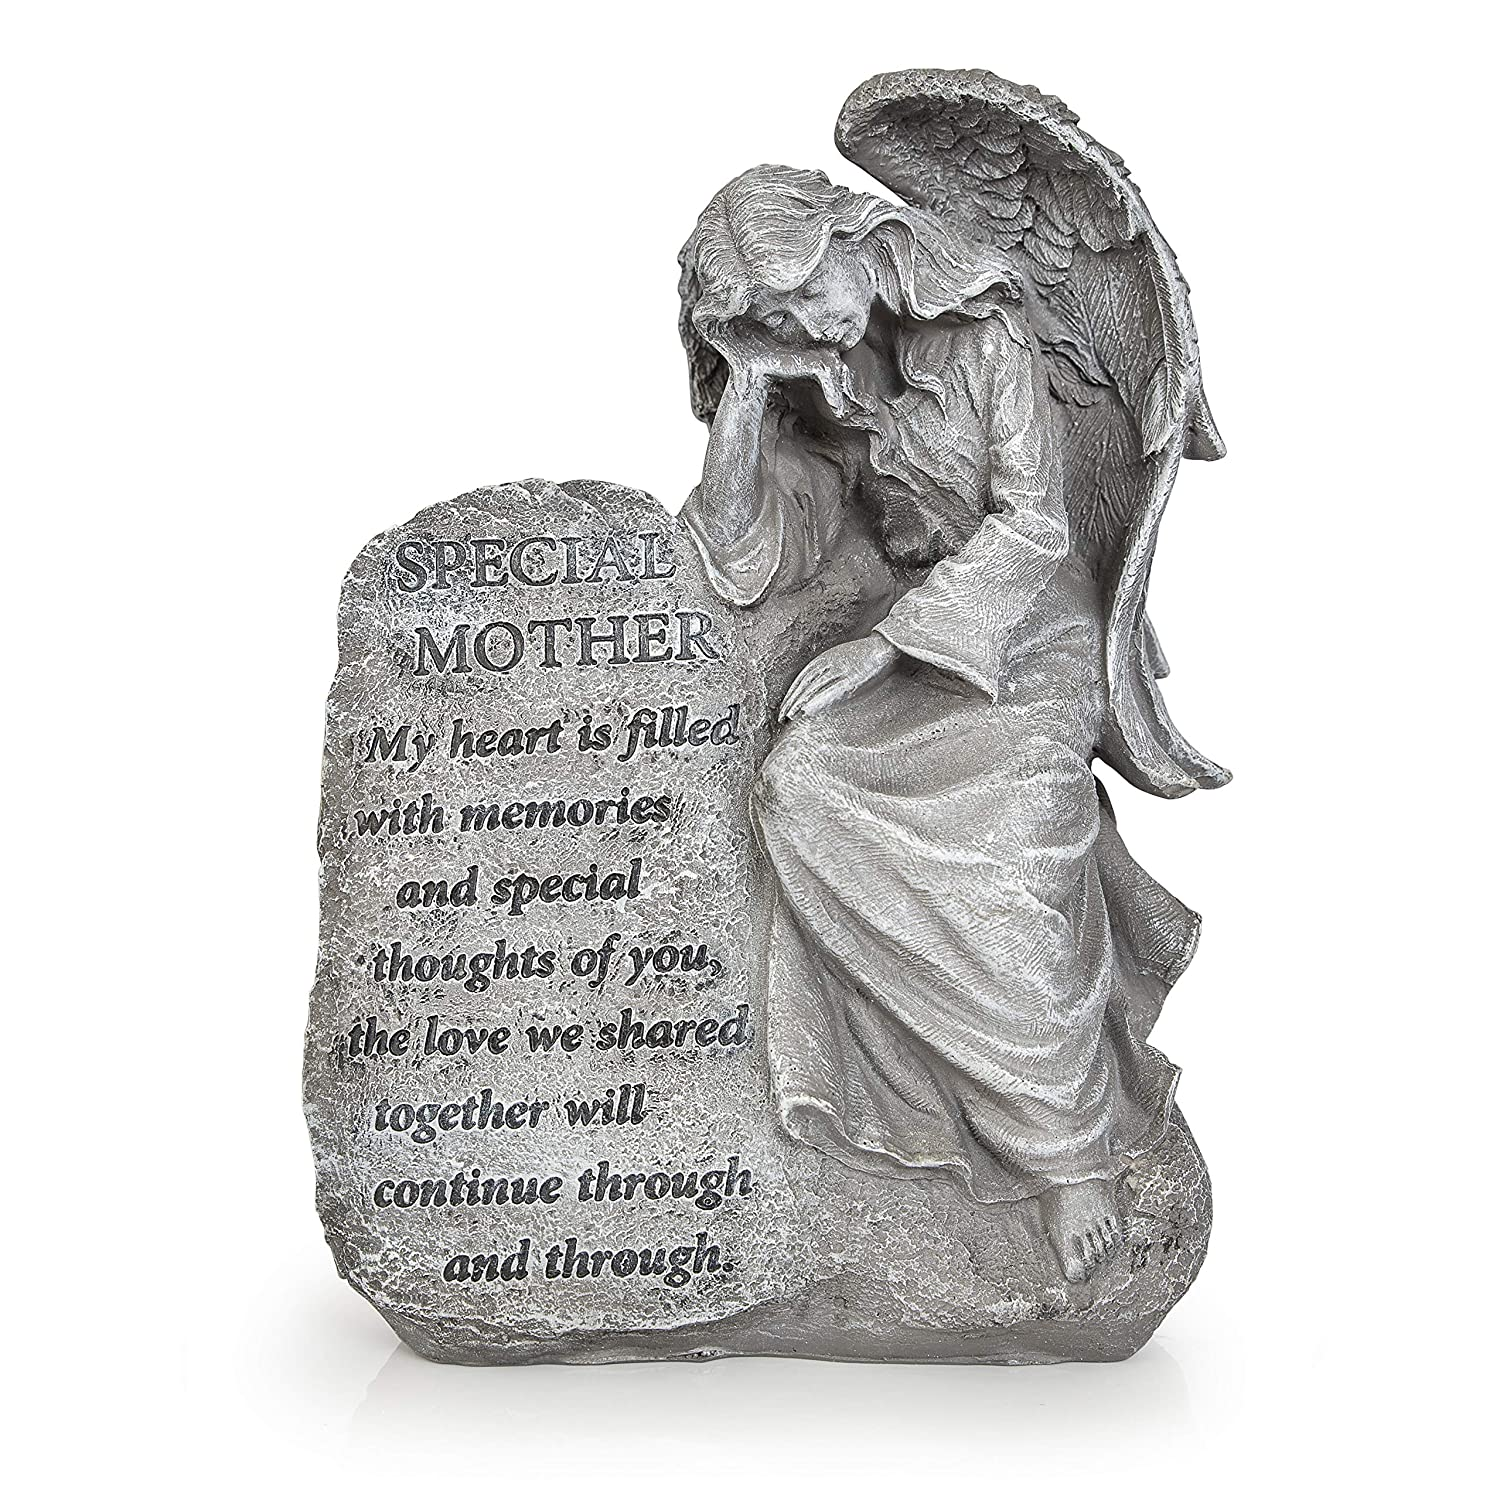 Besti Garden Memorial Stone Angels – Special Mother Stone Angel with Inspirational Quote